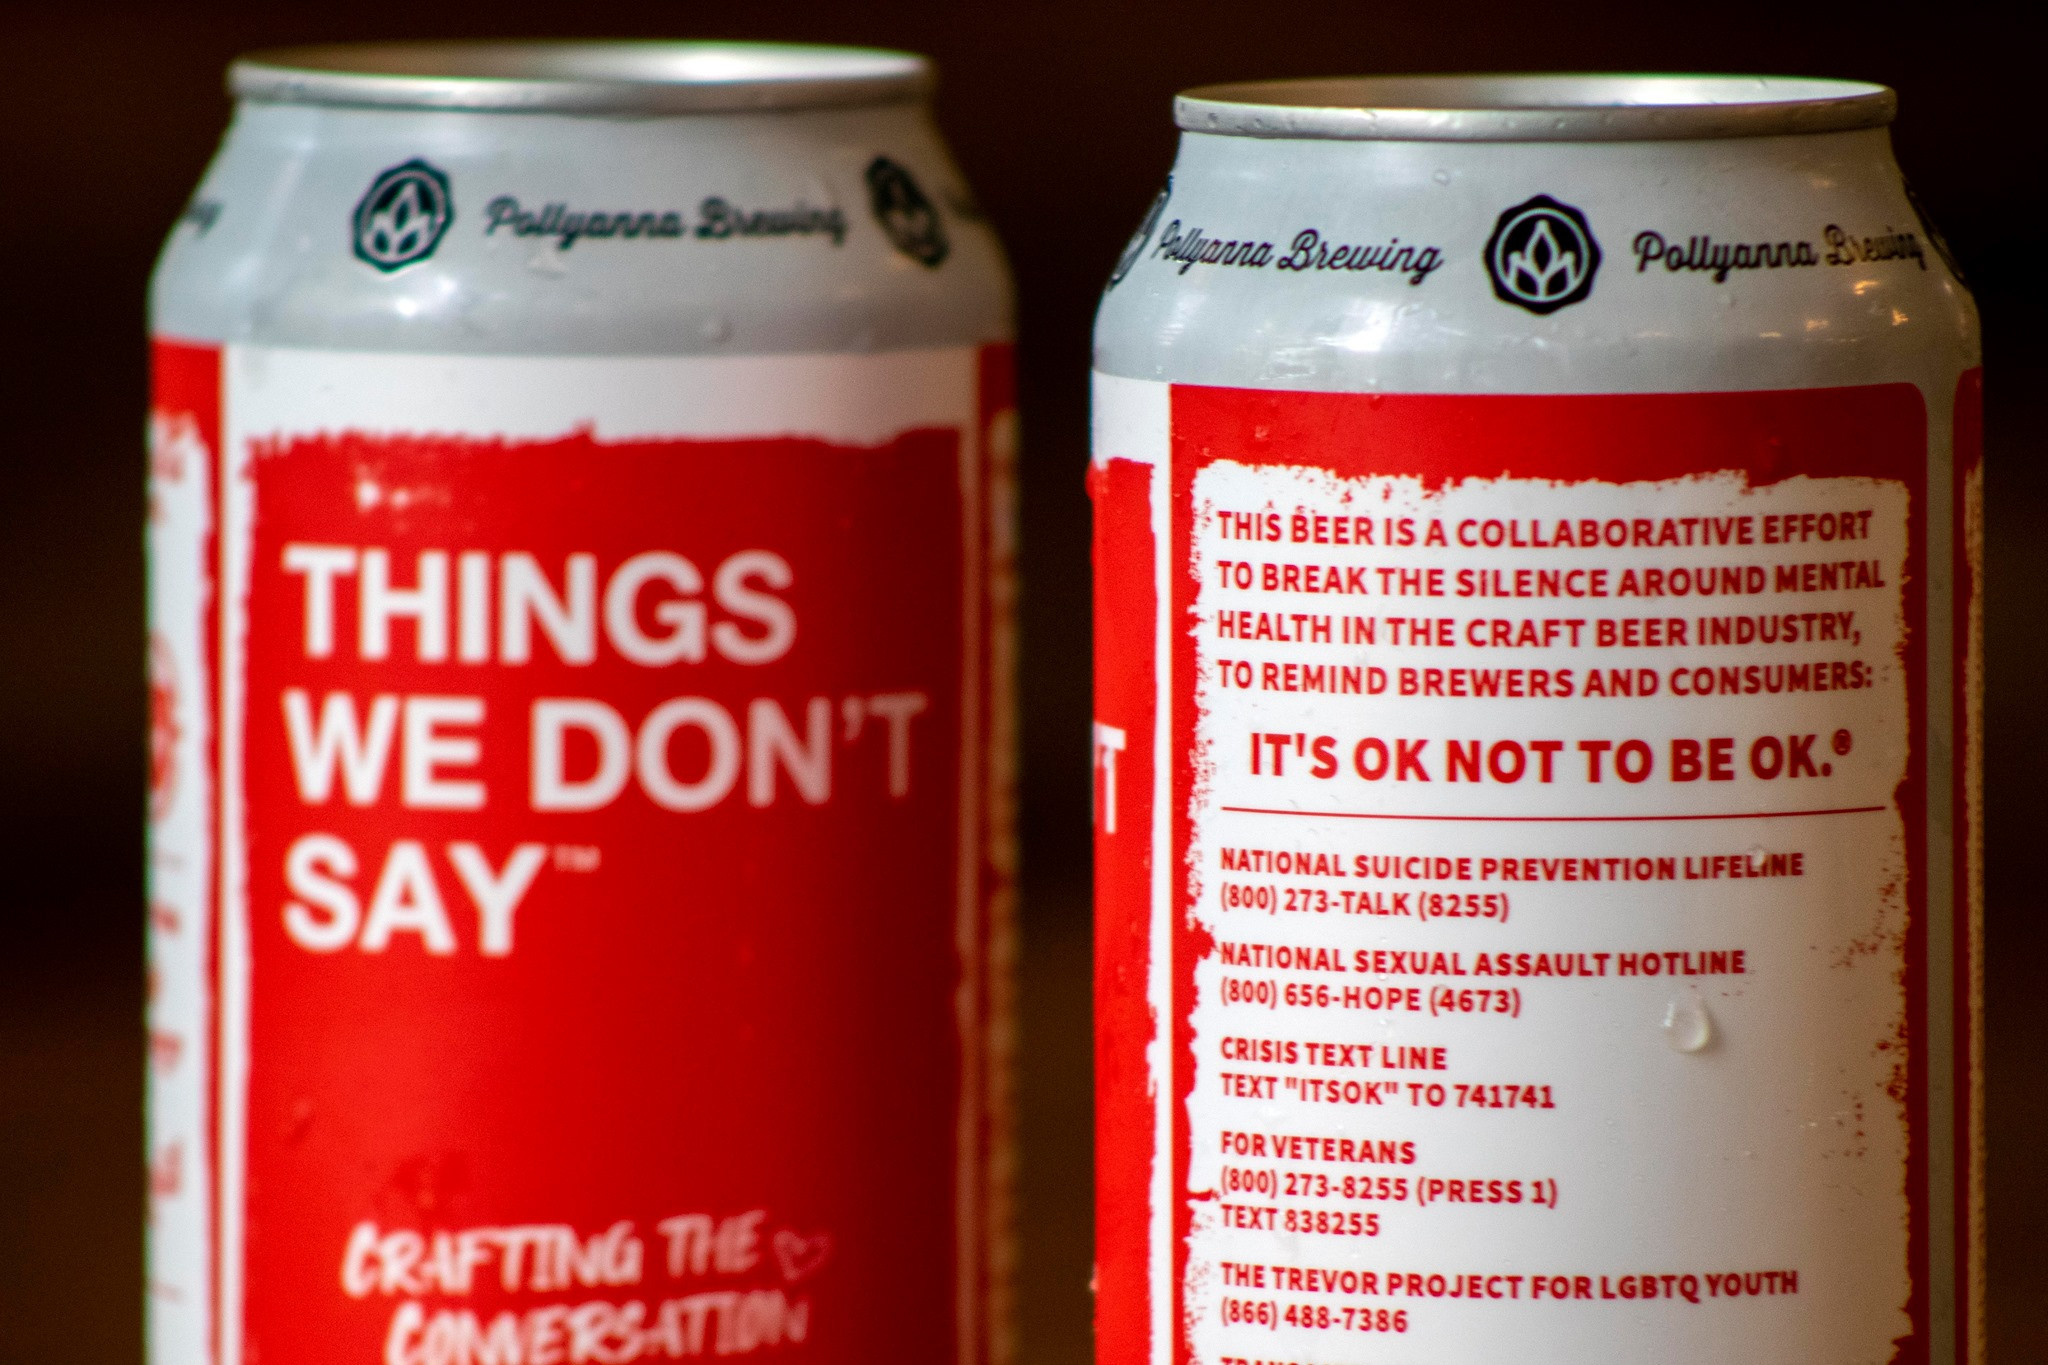 Can's of Pollyanna Brewing Co's Things We Don't Say